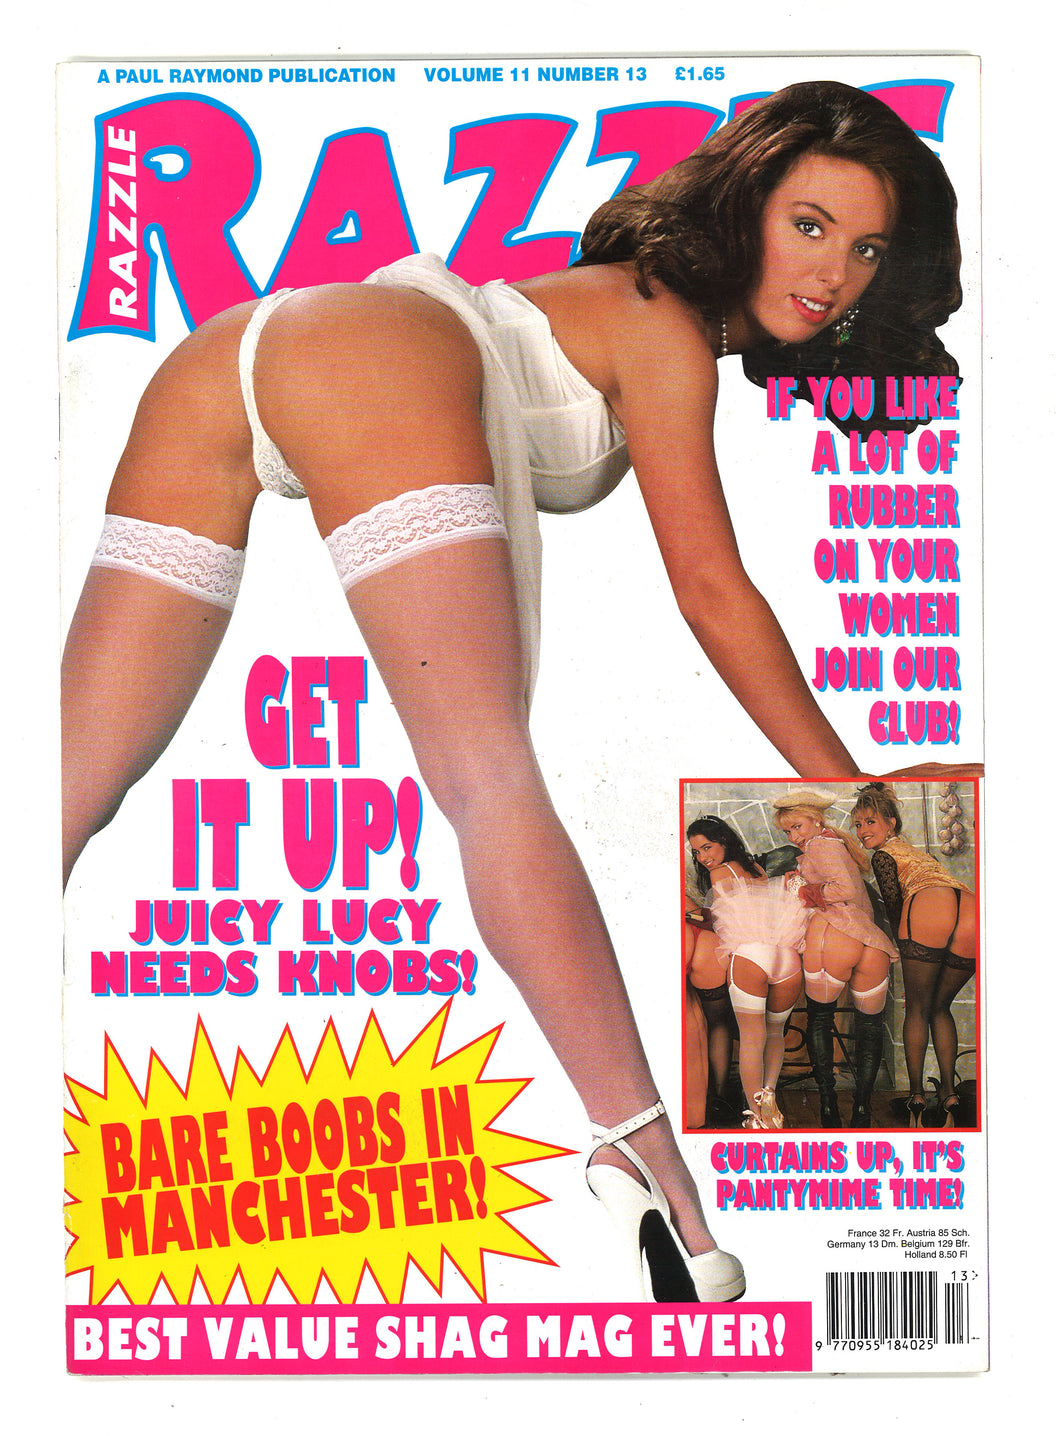 Razzle Vol 11 No 13